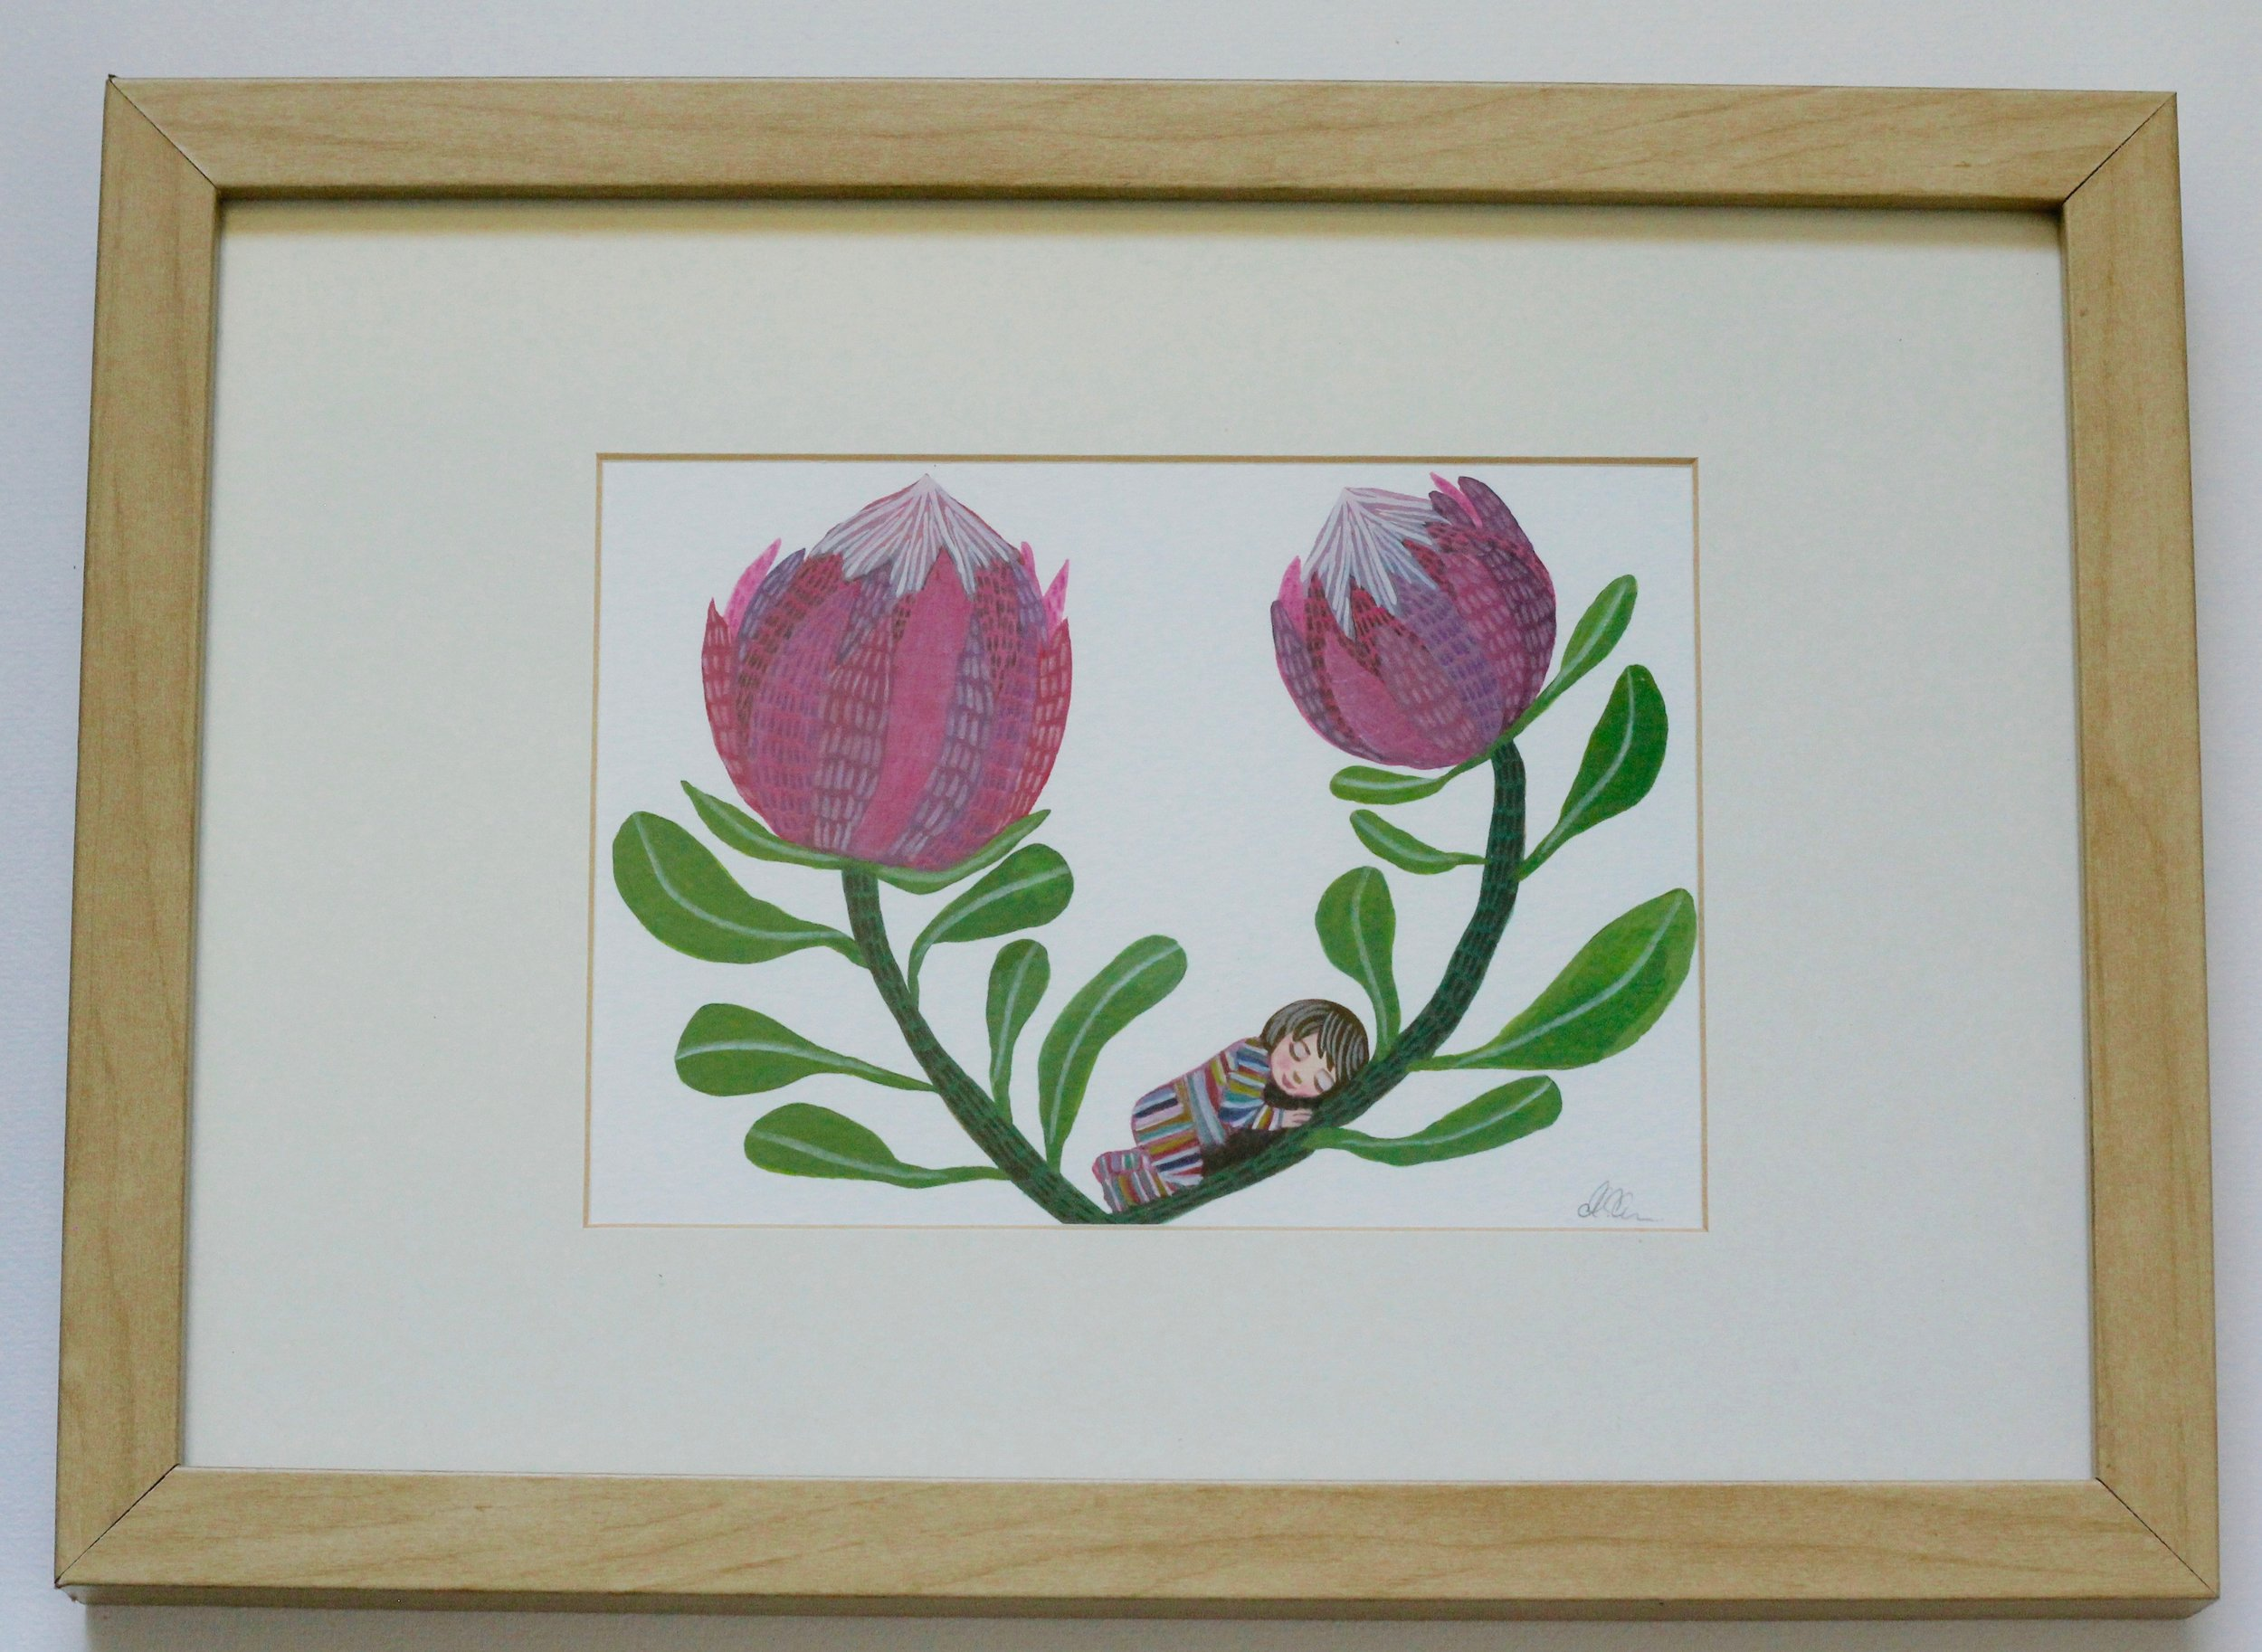 TRANQUIL PROTEAS - 12x17cm gouache and pencil on paper €50SOLD